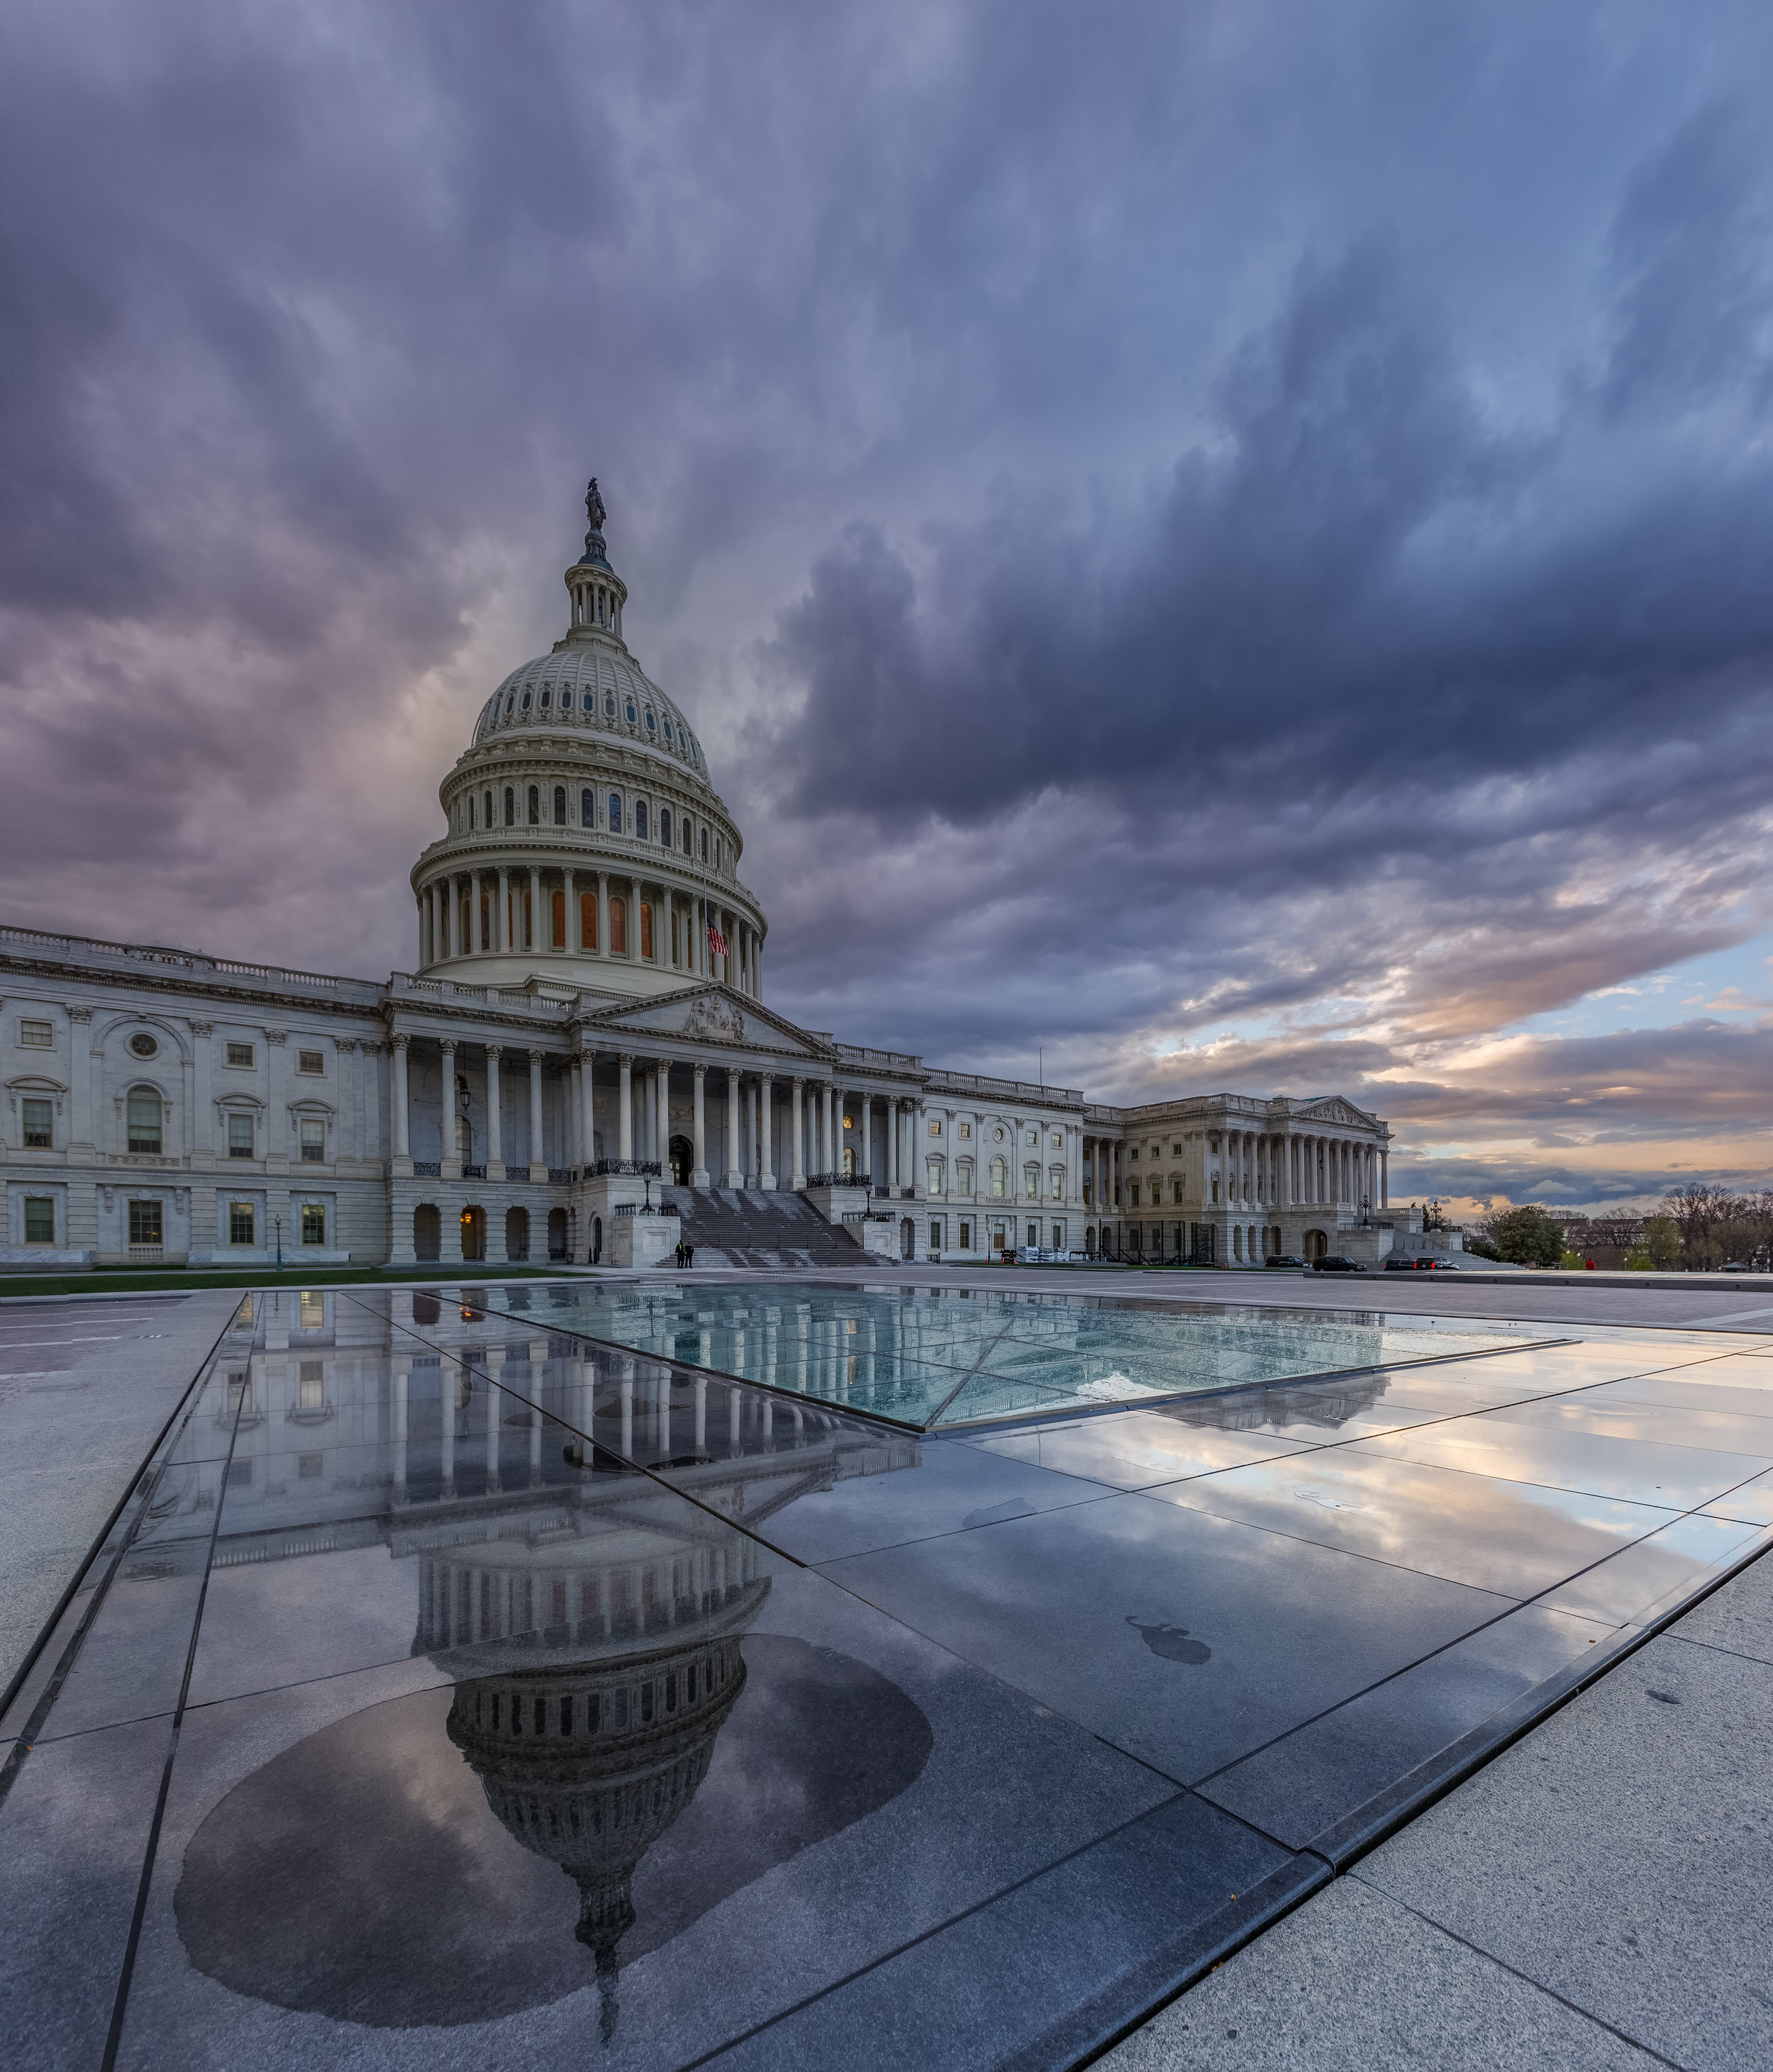 The Capitol as a storm moves in